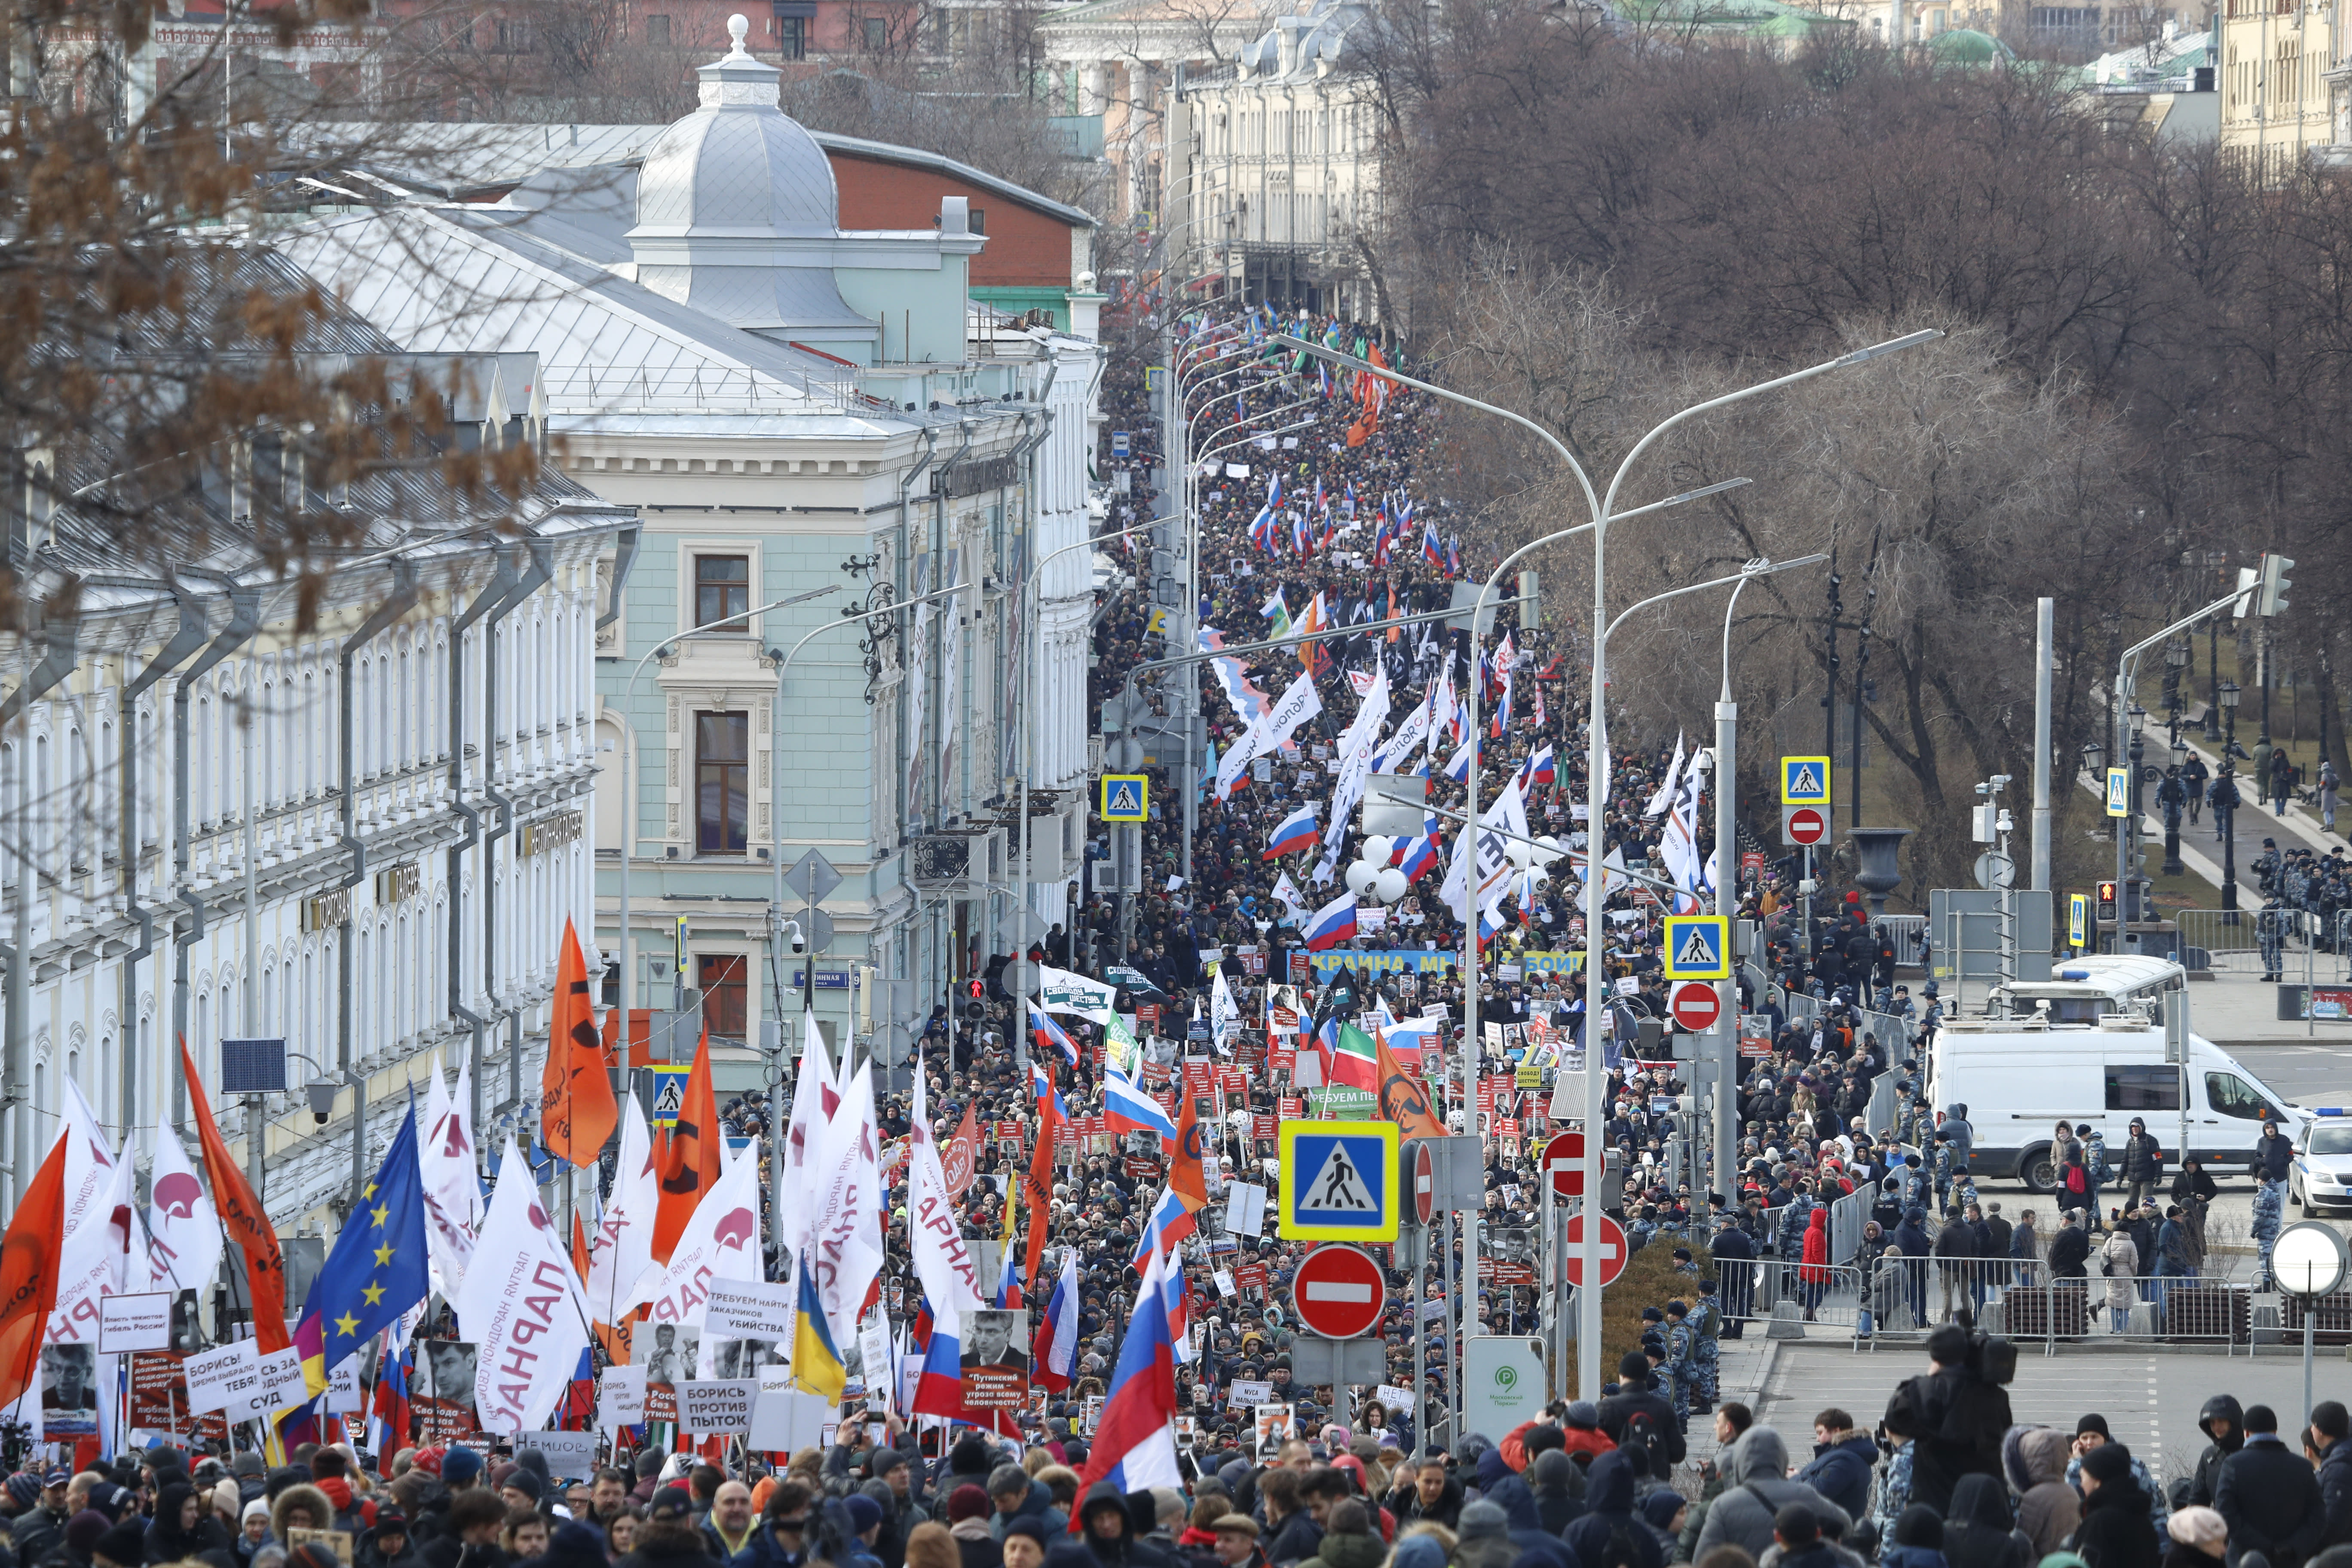 Demonstrators, with flags of different opposition movements, march in memory of opposition leader Boris Nemtsov in Moscow, Russia, Saturday, Feb. 29, 2020. Nemtsov, a charismatic Russian opposition leader and sharp critic of President Vladimir Putin, was gunned down on Feb. 27, 2015 near the Kremlin in Moscow, Russia. (AP Photo/Pavel Golovkin)